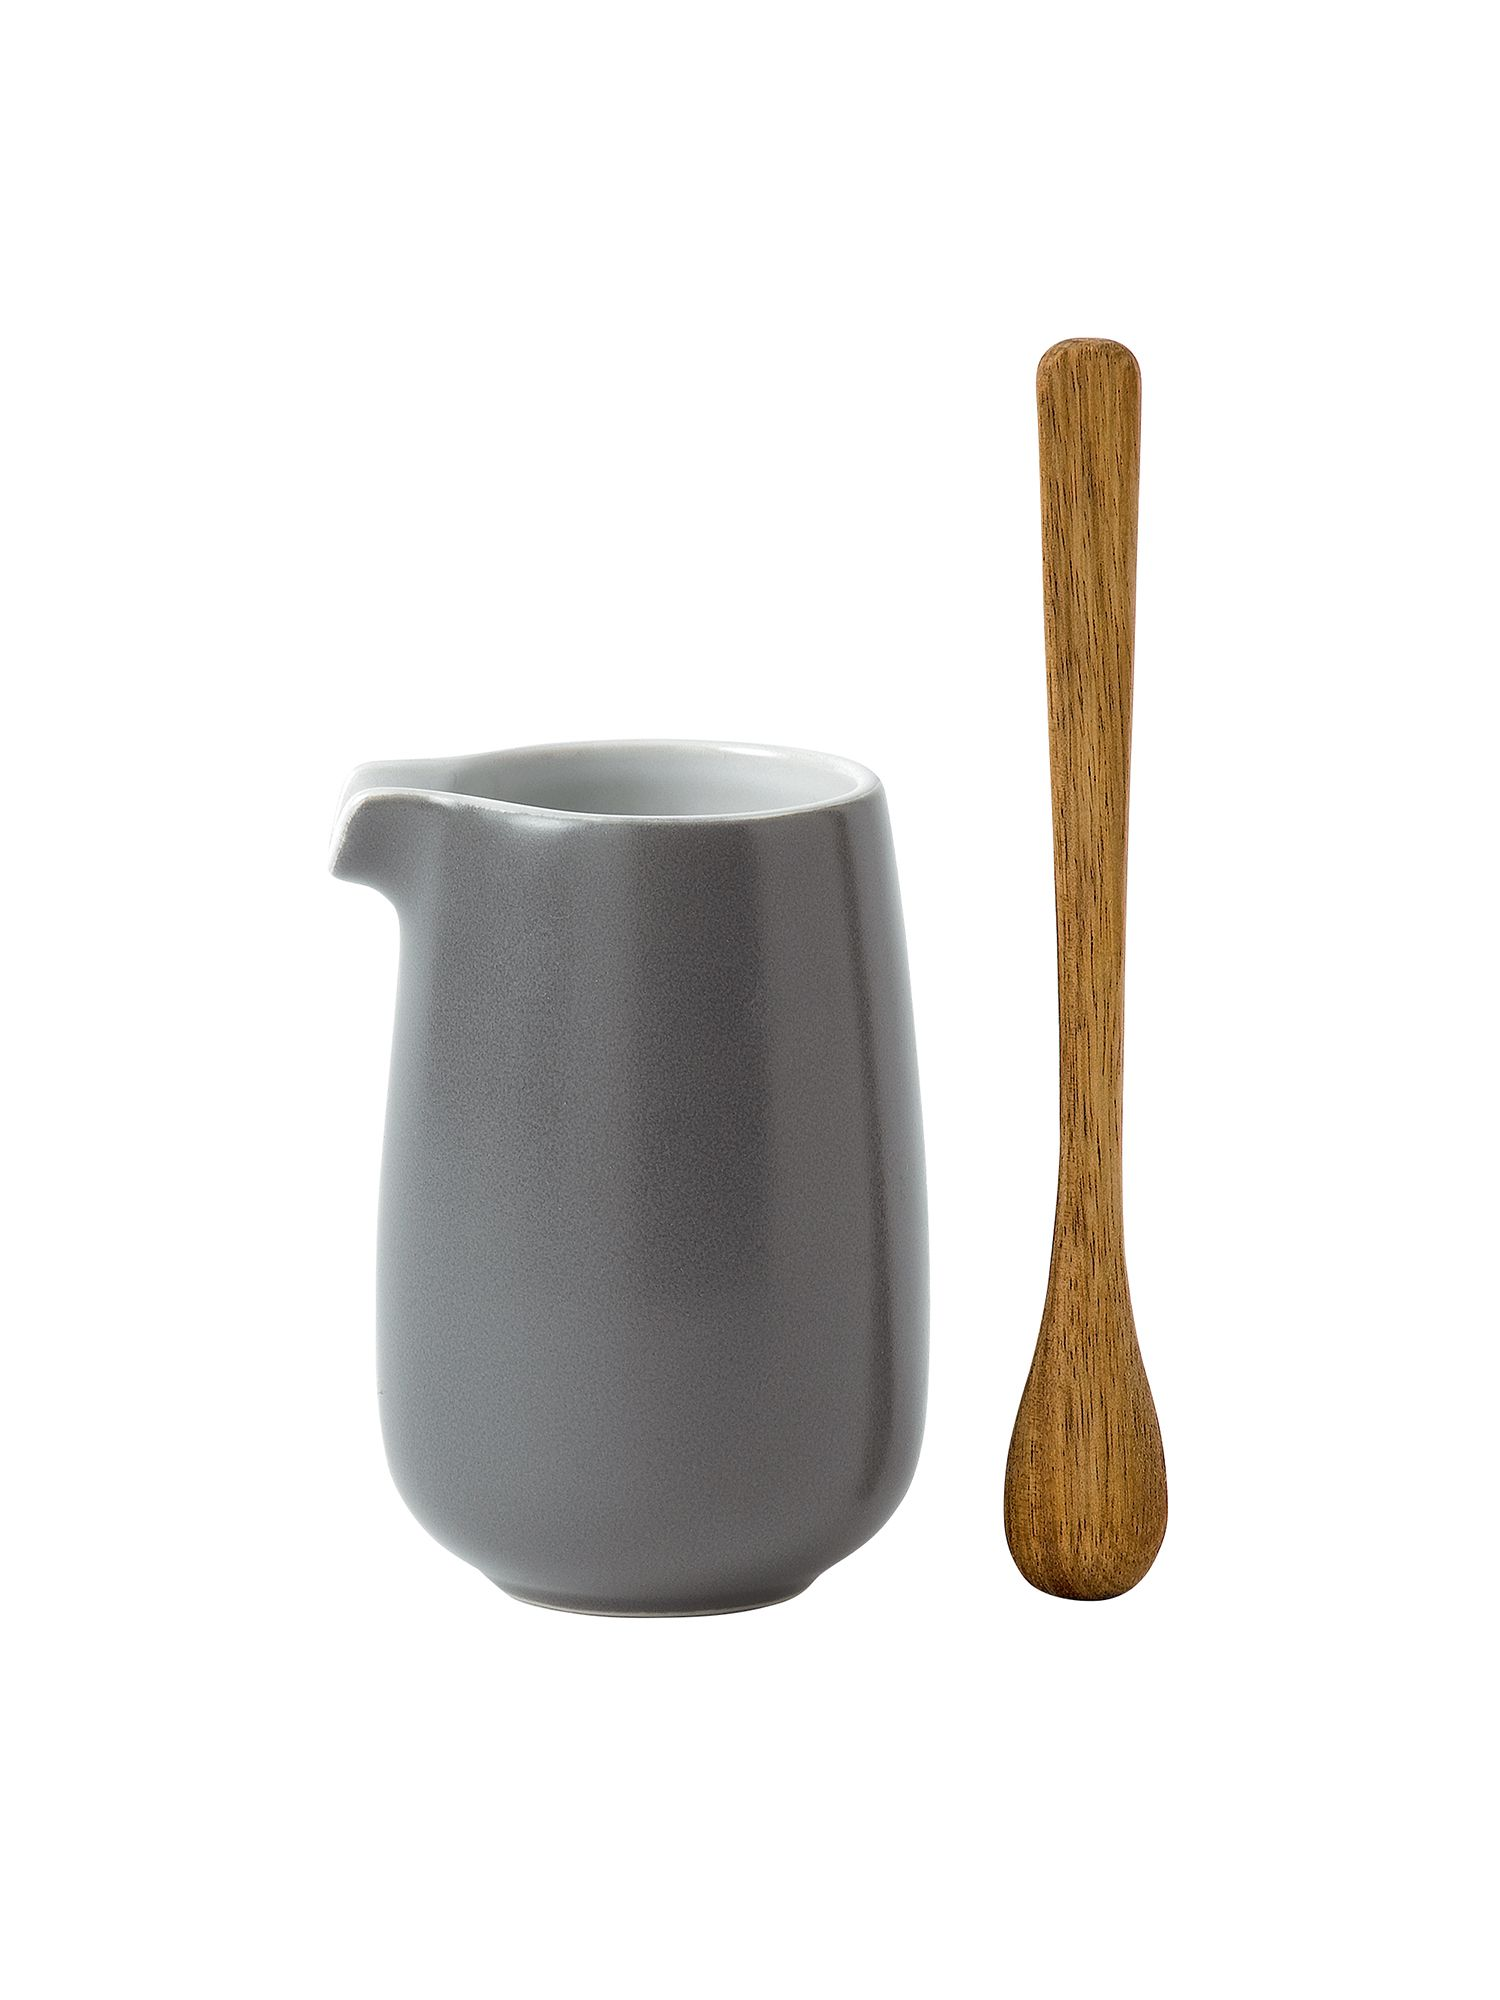 Gordon ramsay bread street small jug and paddle